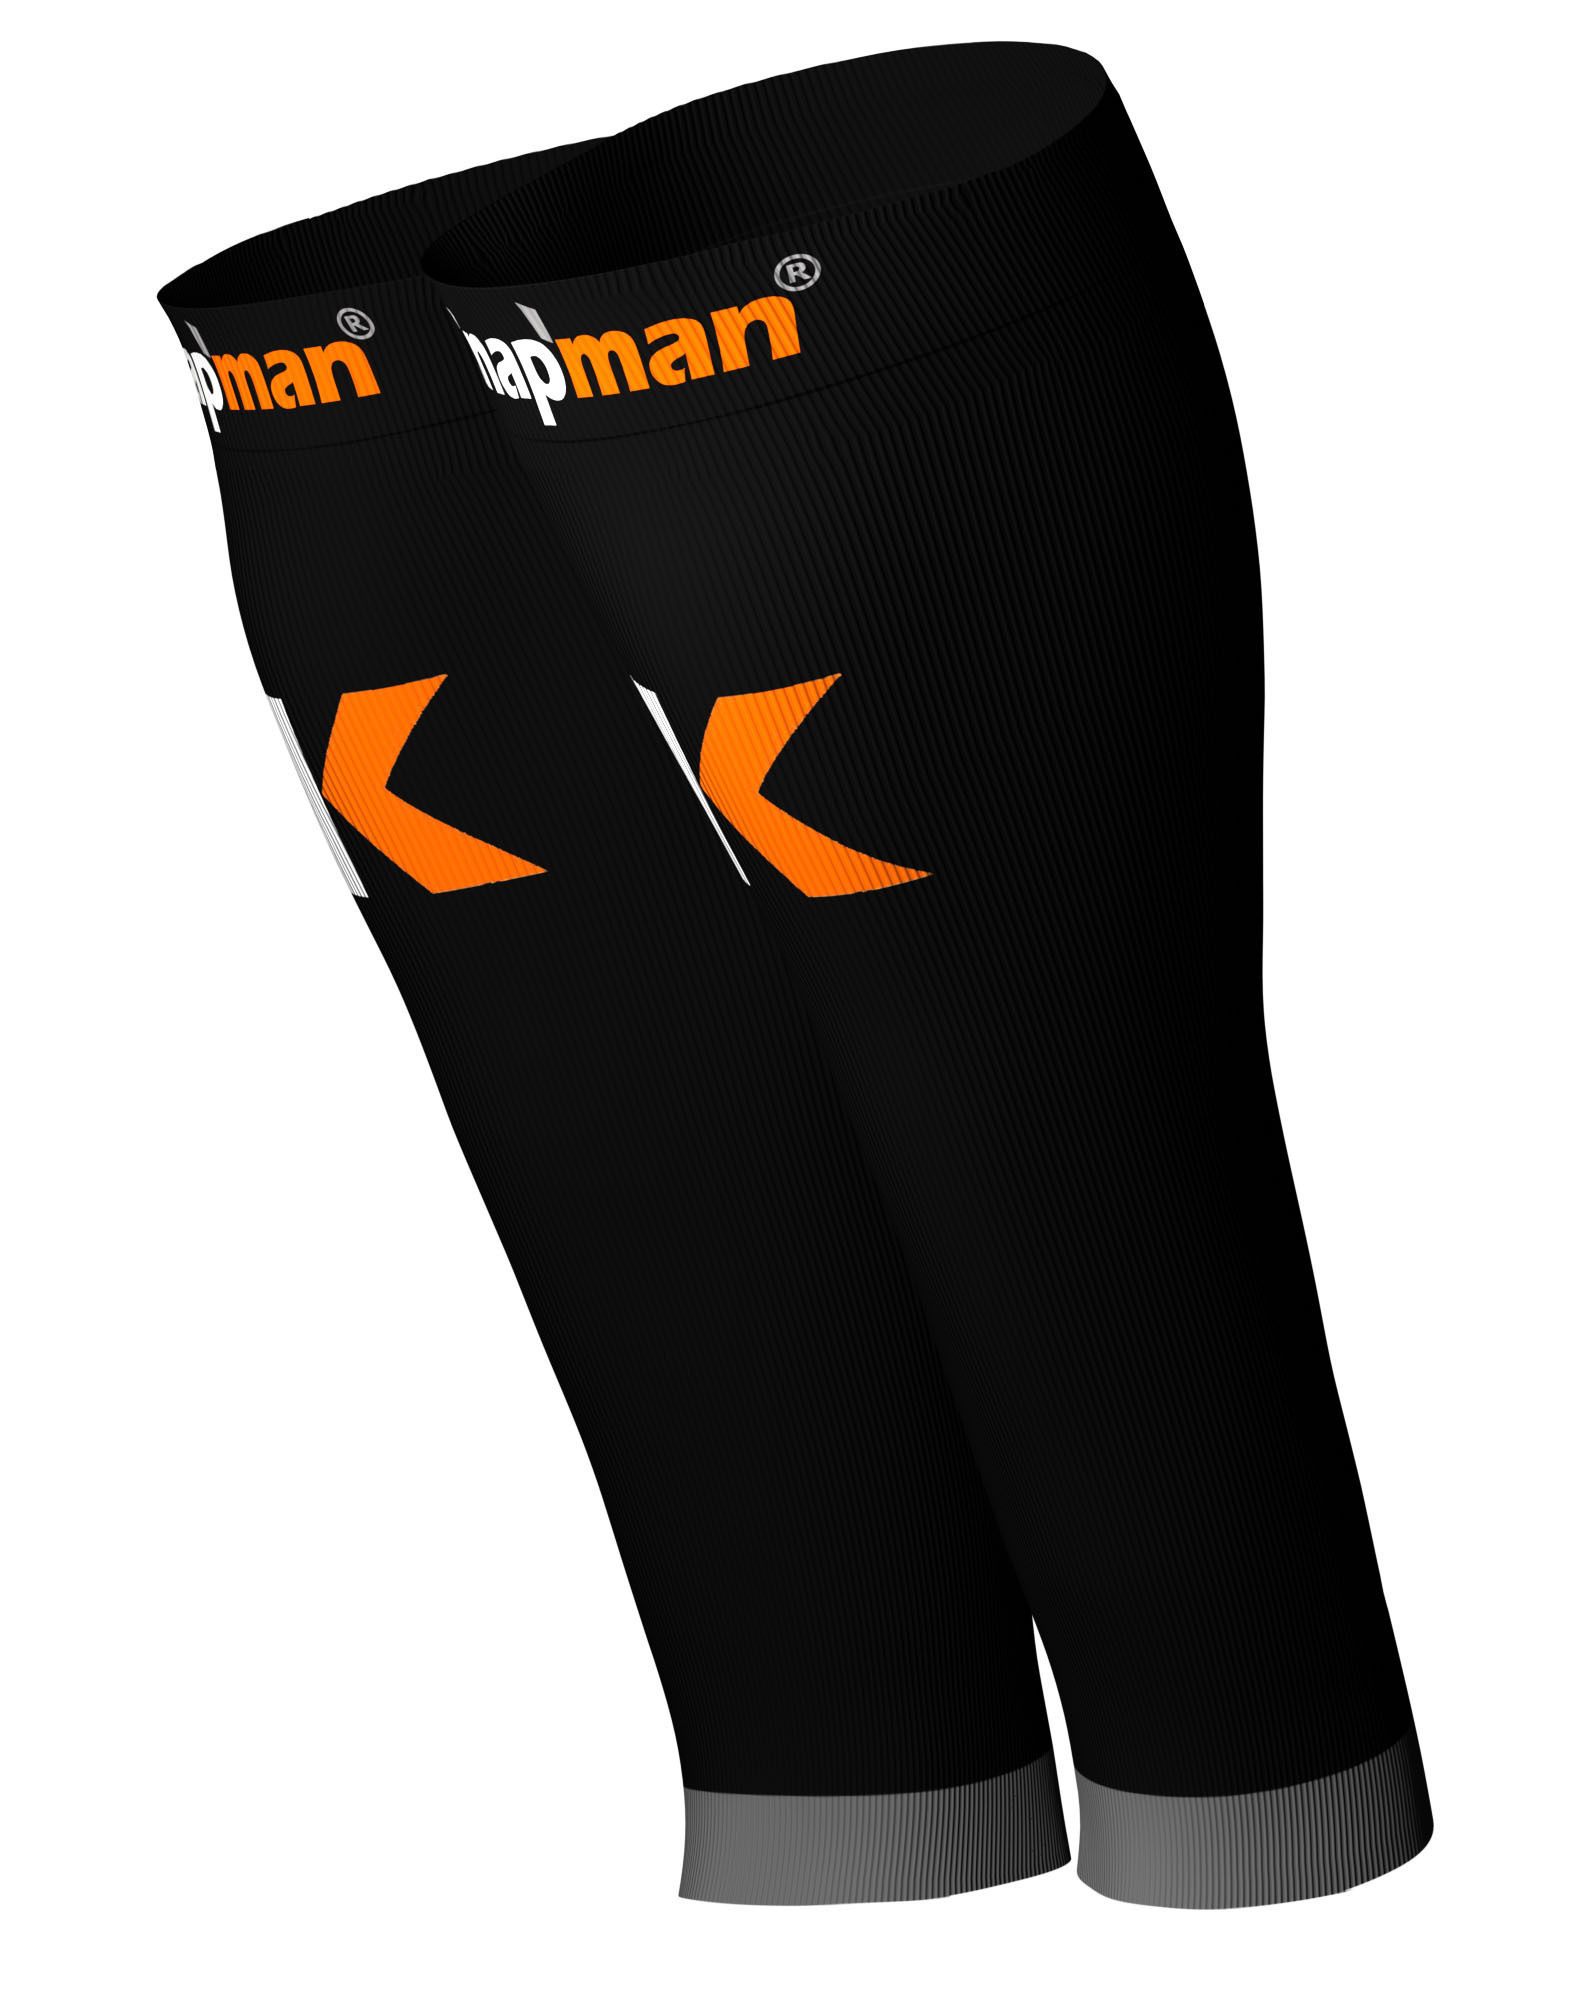 Knap'man Active Strong Compressie Calf Sleeves zwart